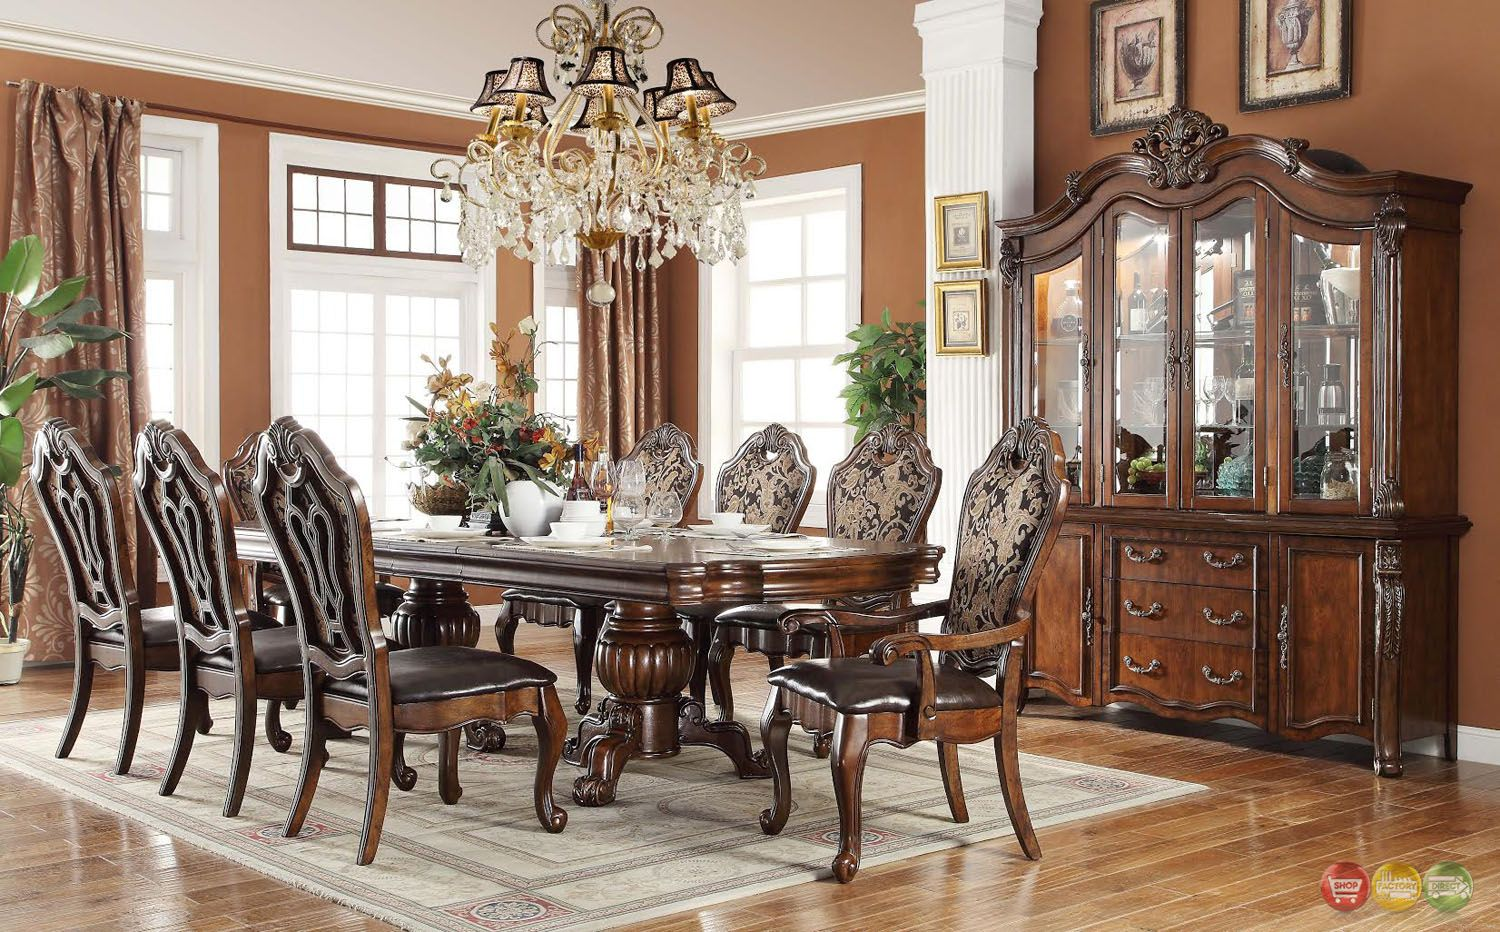 The Buffet & Hutch Are Beautifully Sculpted To Match The Curved Inspiration Traditional Dining Room Set Inspiration